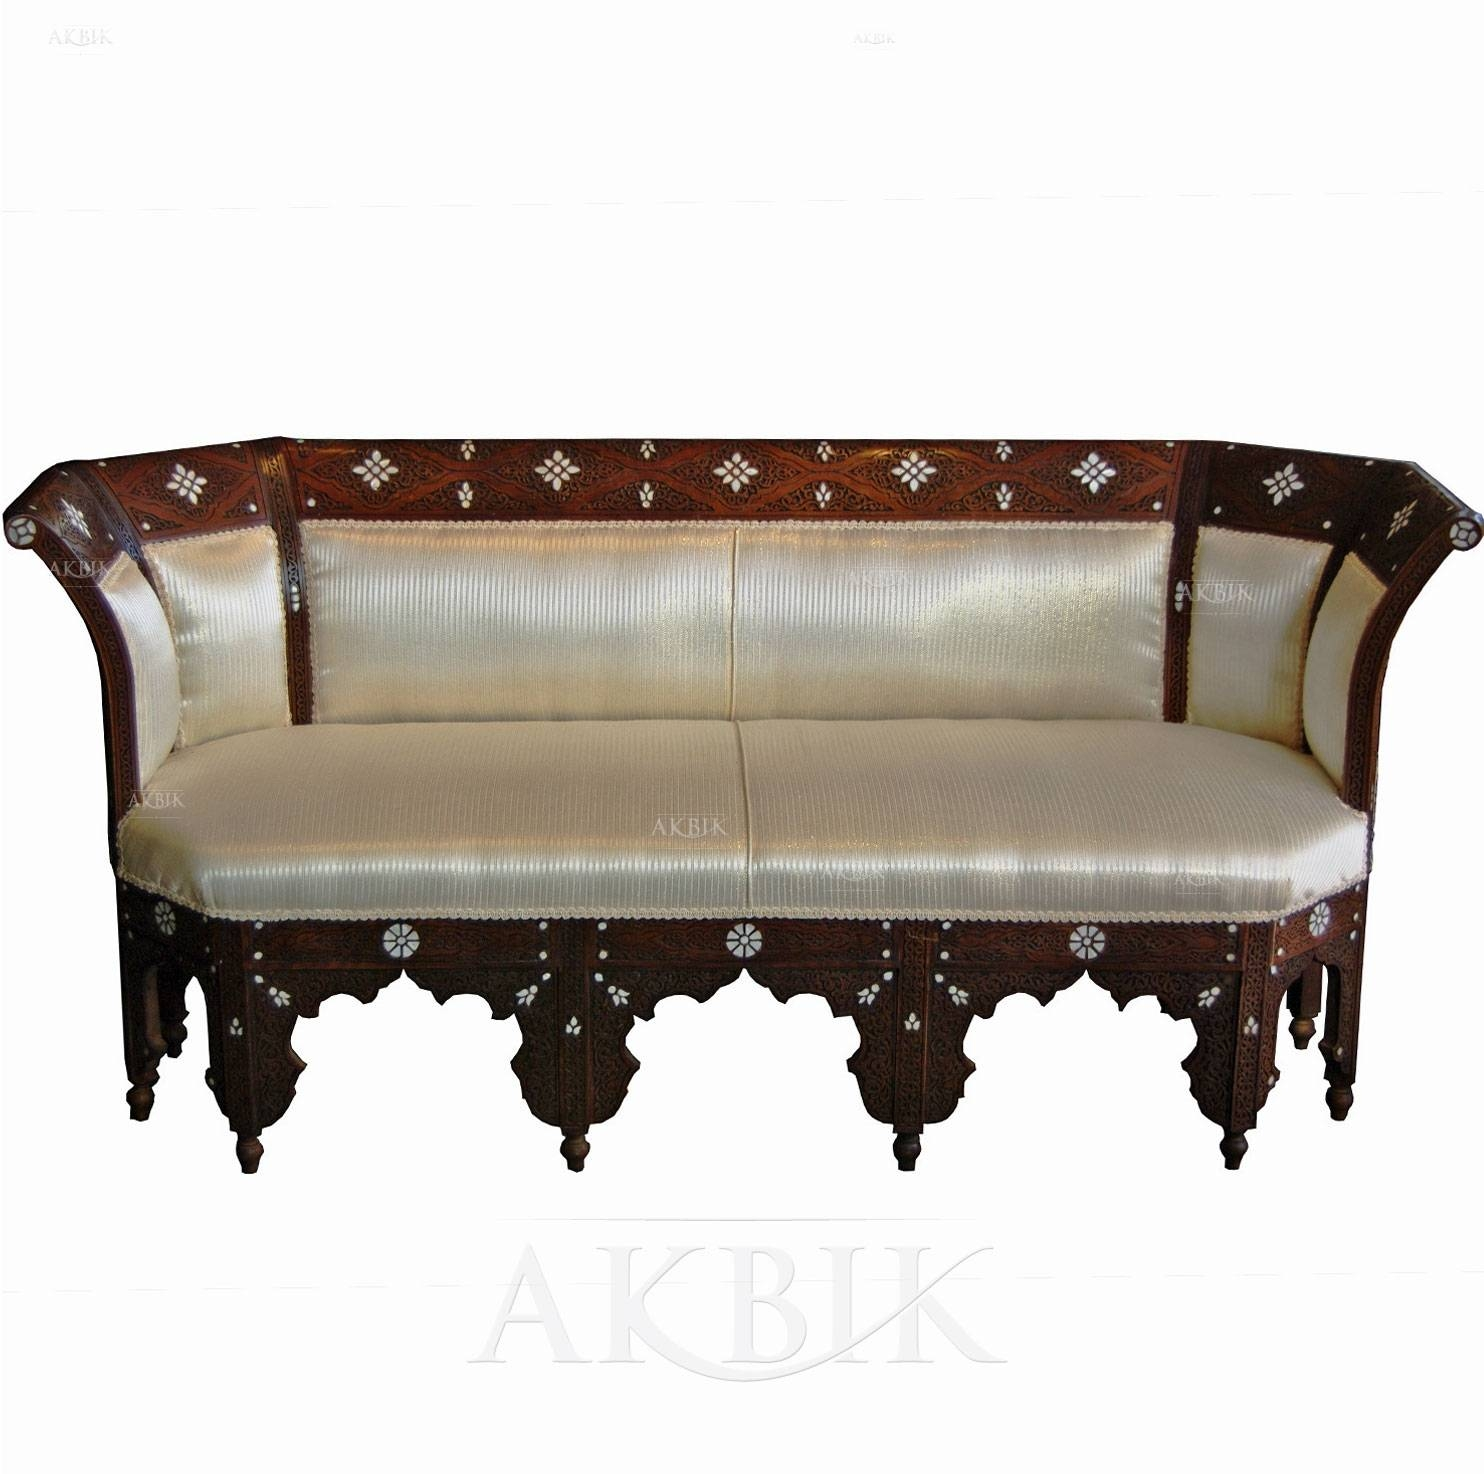 Mediterranean, Levantine & Syrian Furniture Inlaid With Mother Of inside Bench Style Sofas (Image 5 of 15)